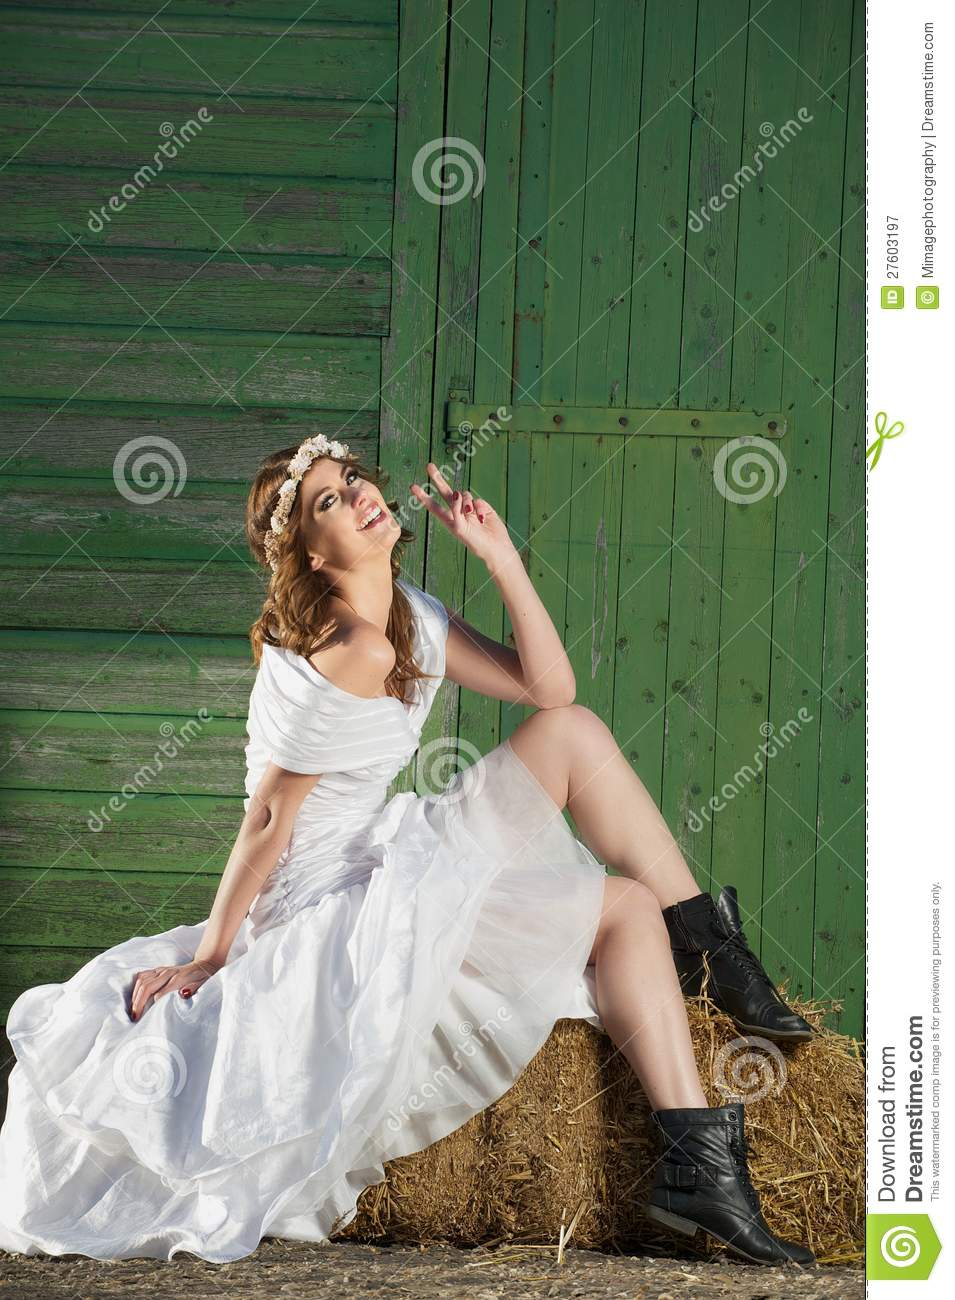 Fun and Friendly Fashion Bride